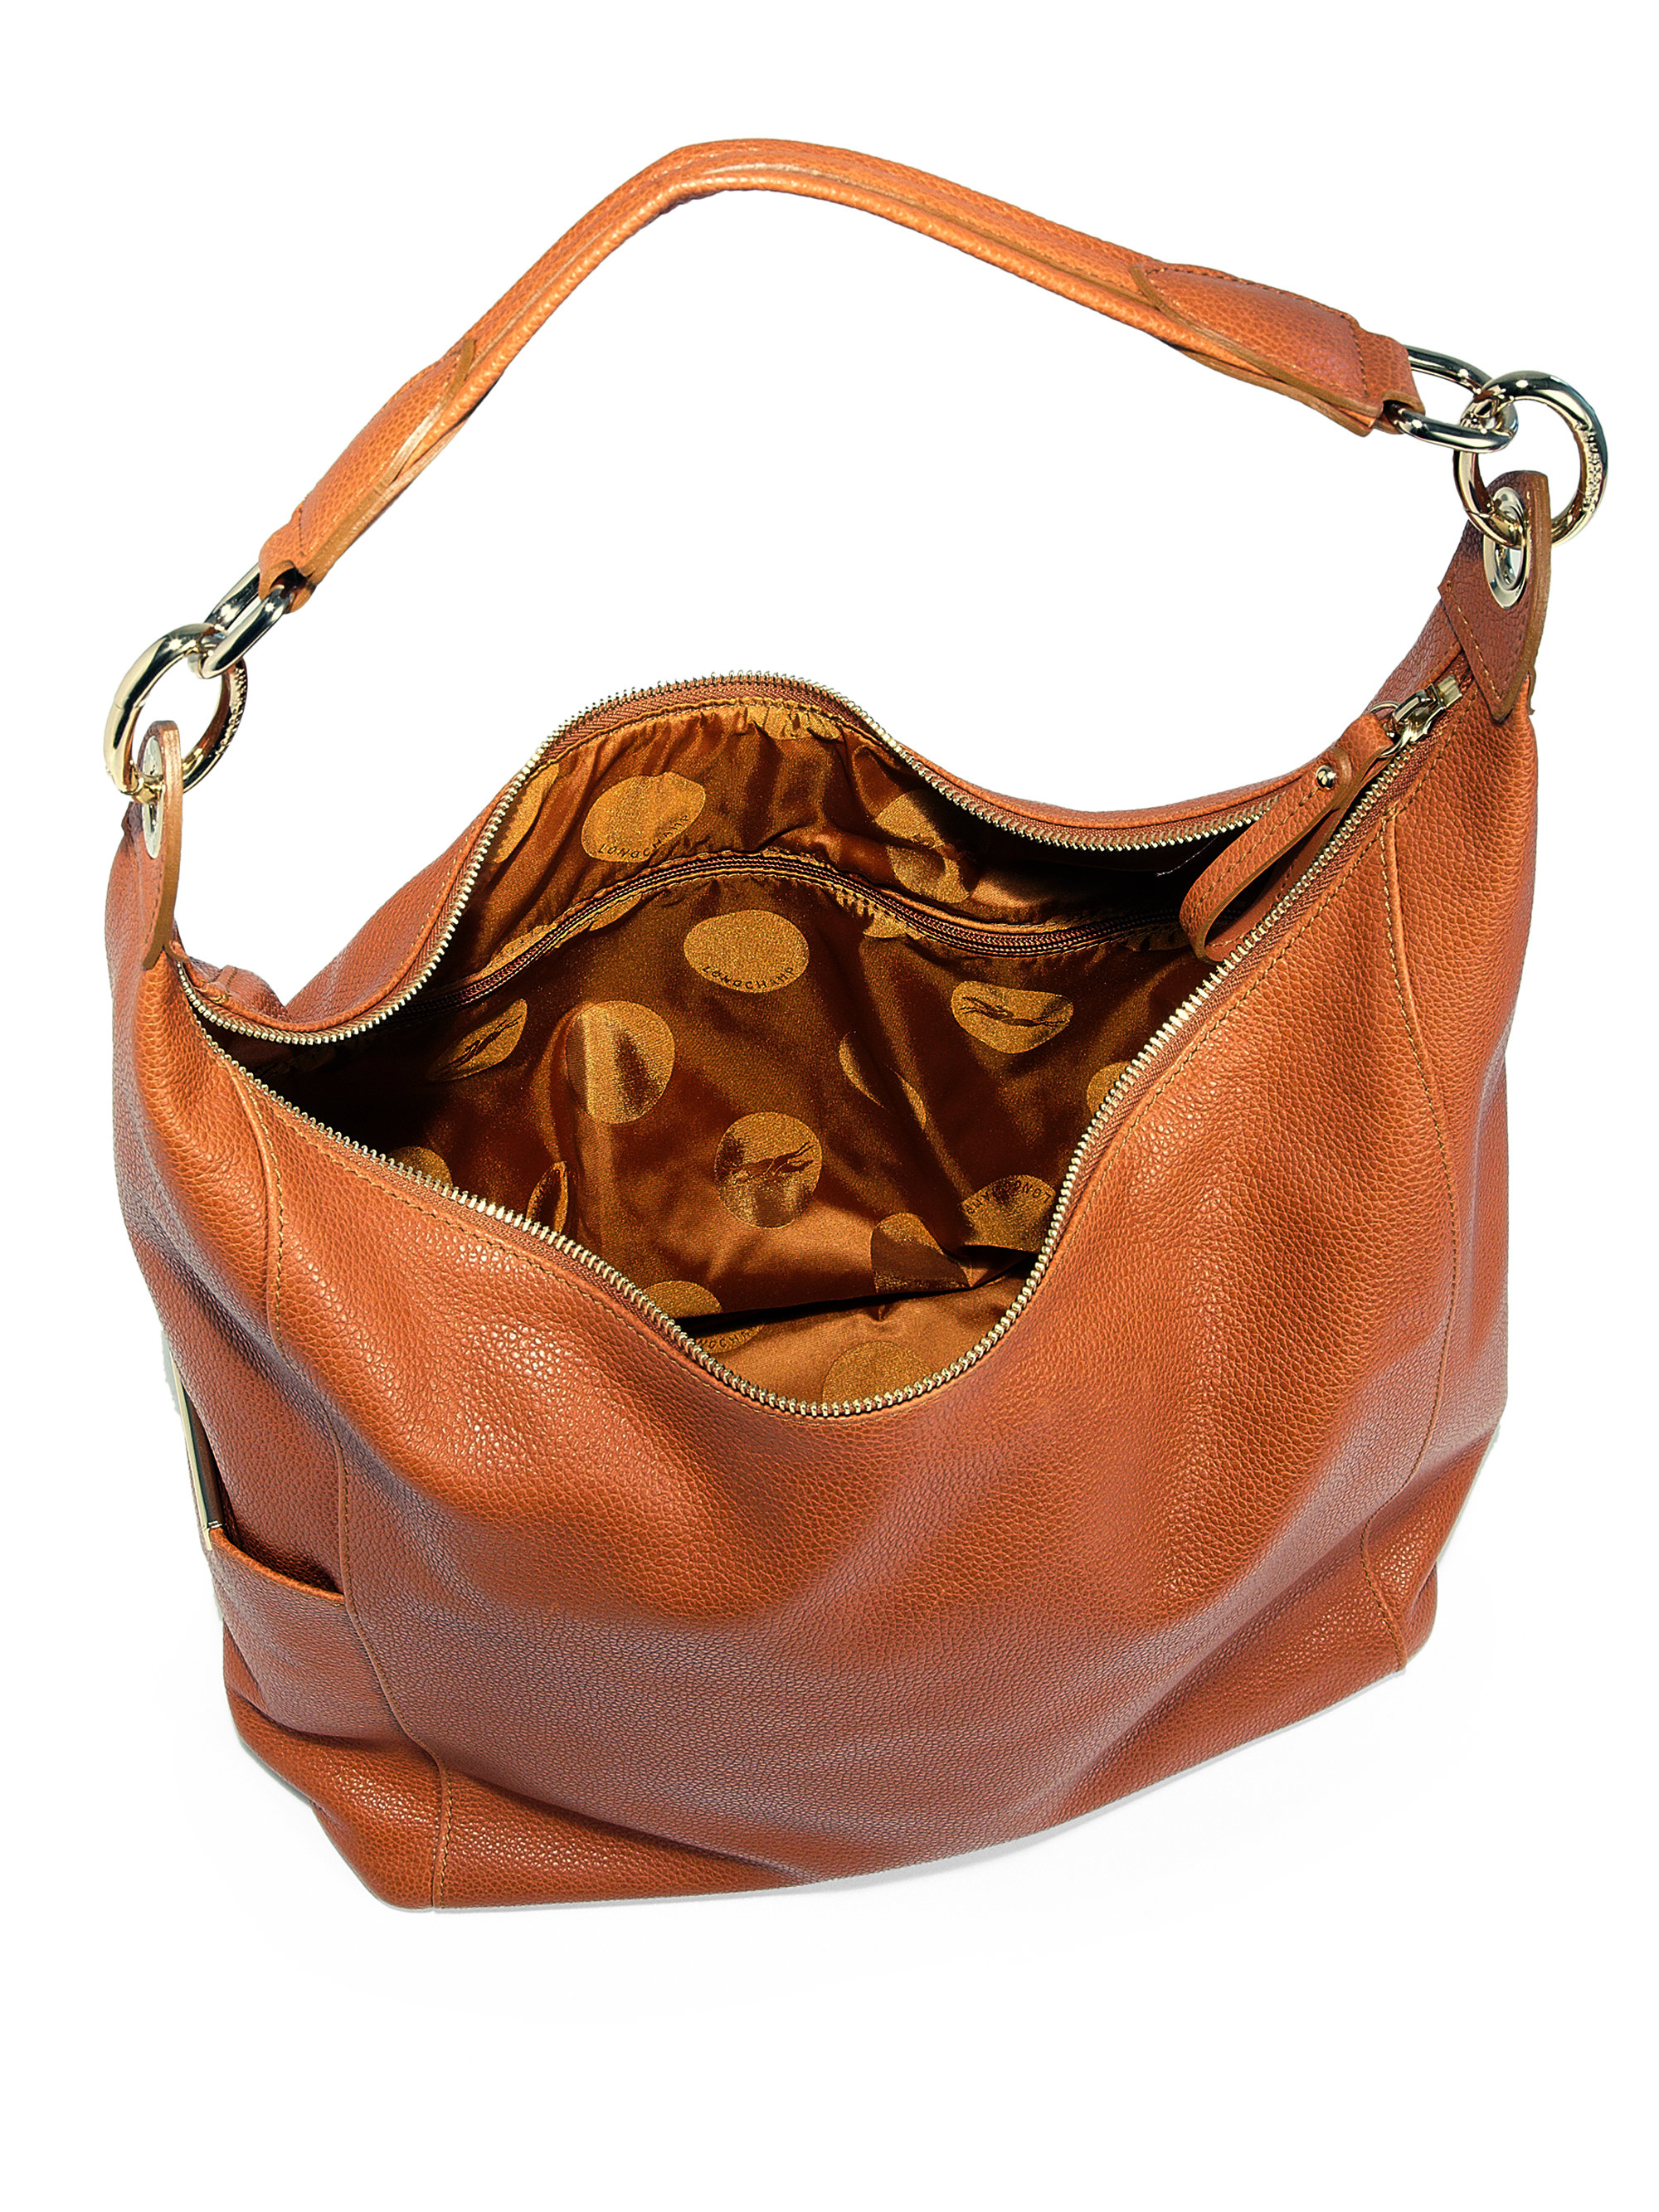 Shop women's leather bags and purses by Hobo. Our designer philosophy balances beauty and utility, artisan leather craft and flawless function. Hobo leather handbags and purses are eminently wearable and only get better with age.